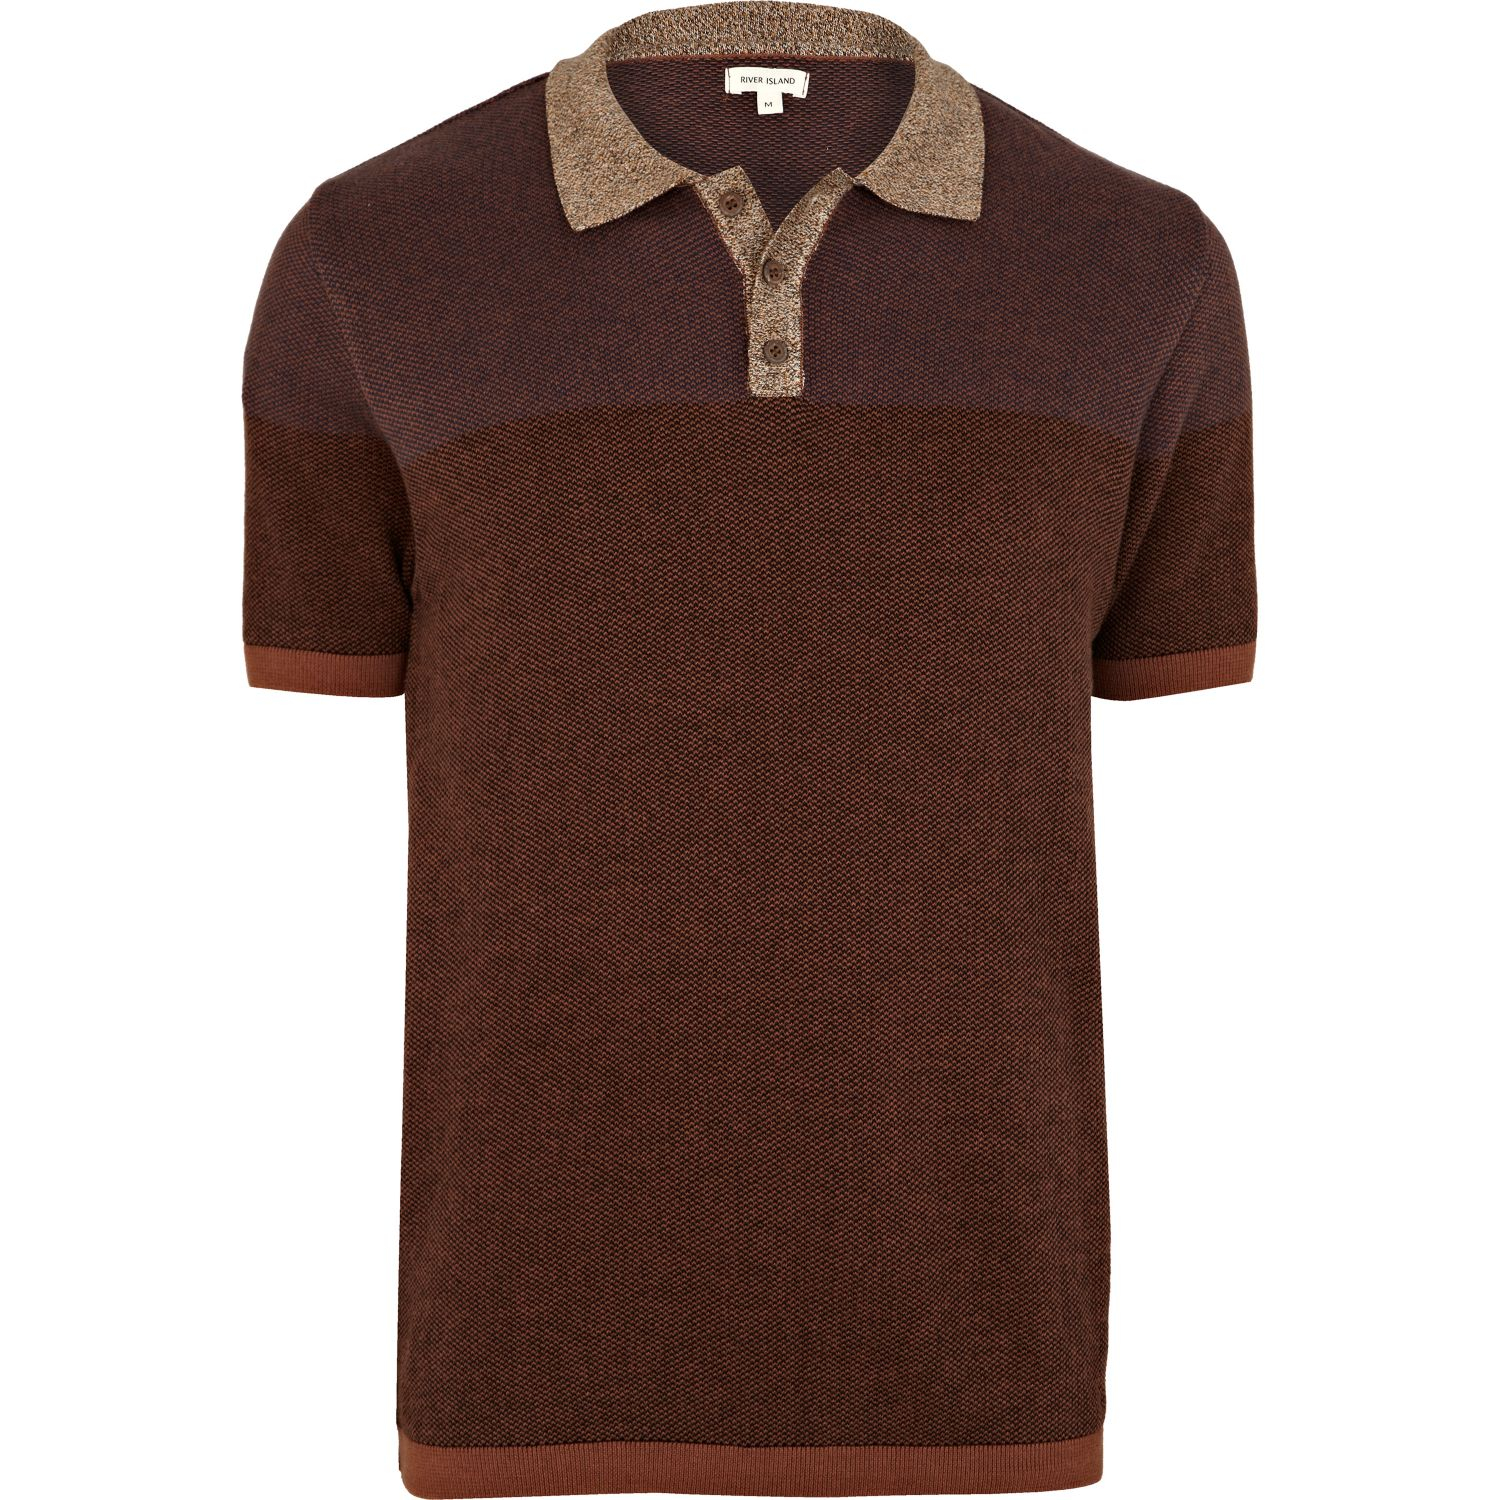 River island brown color block pattern knitted polo shirt for Polo color block shirt